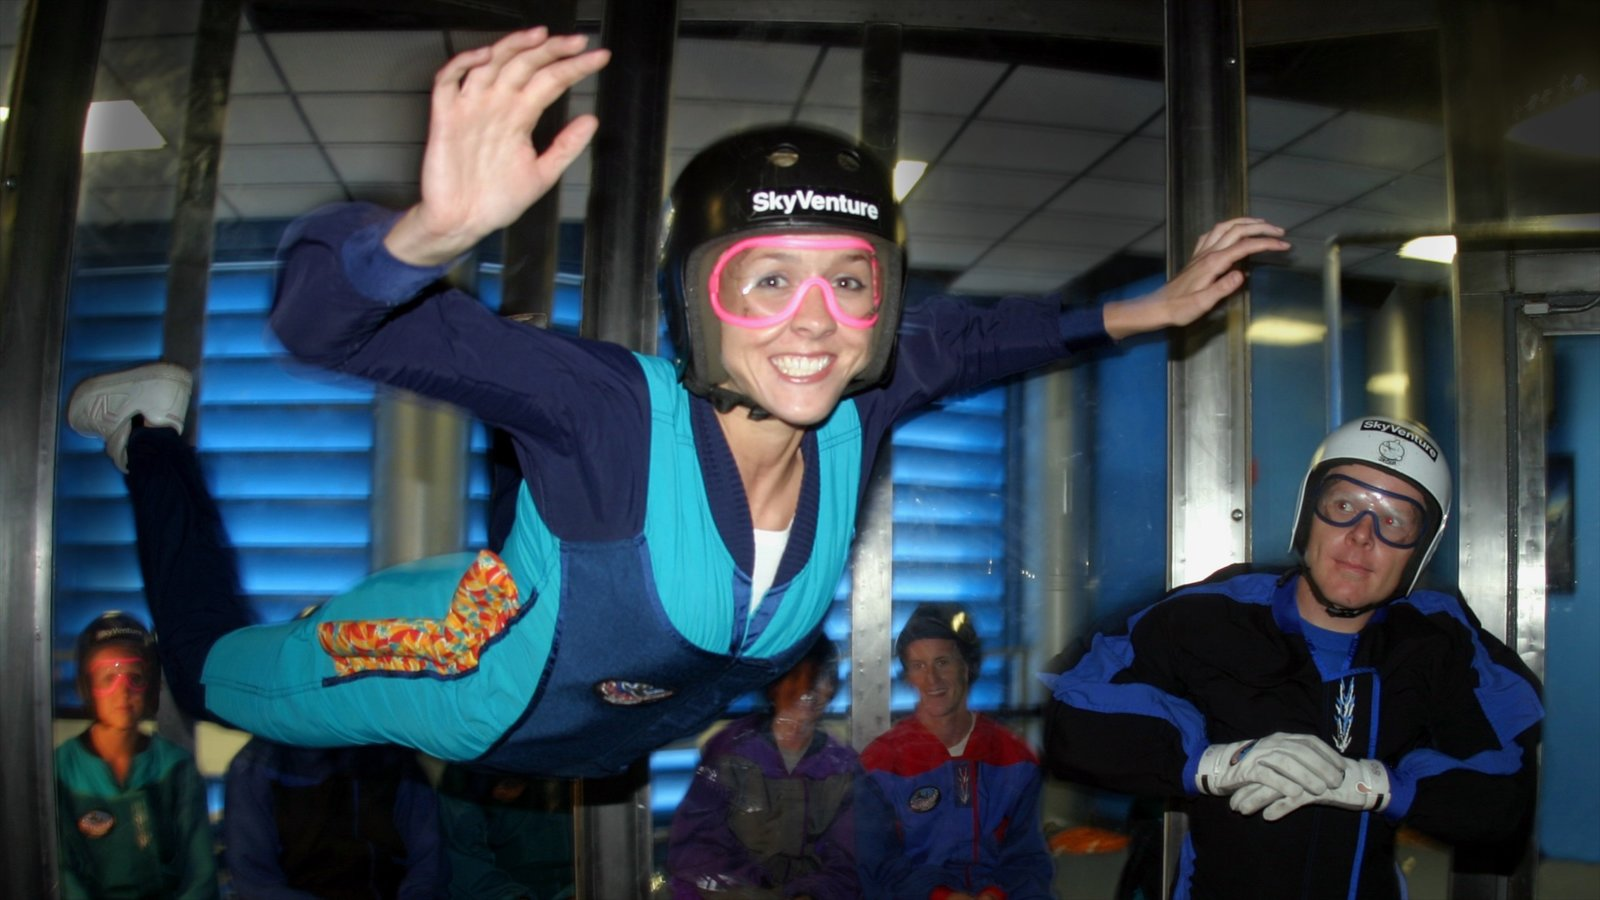 Orlando which includes interior views and skydiving